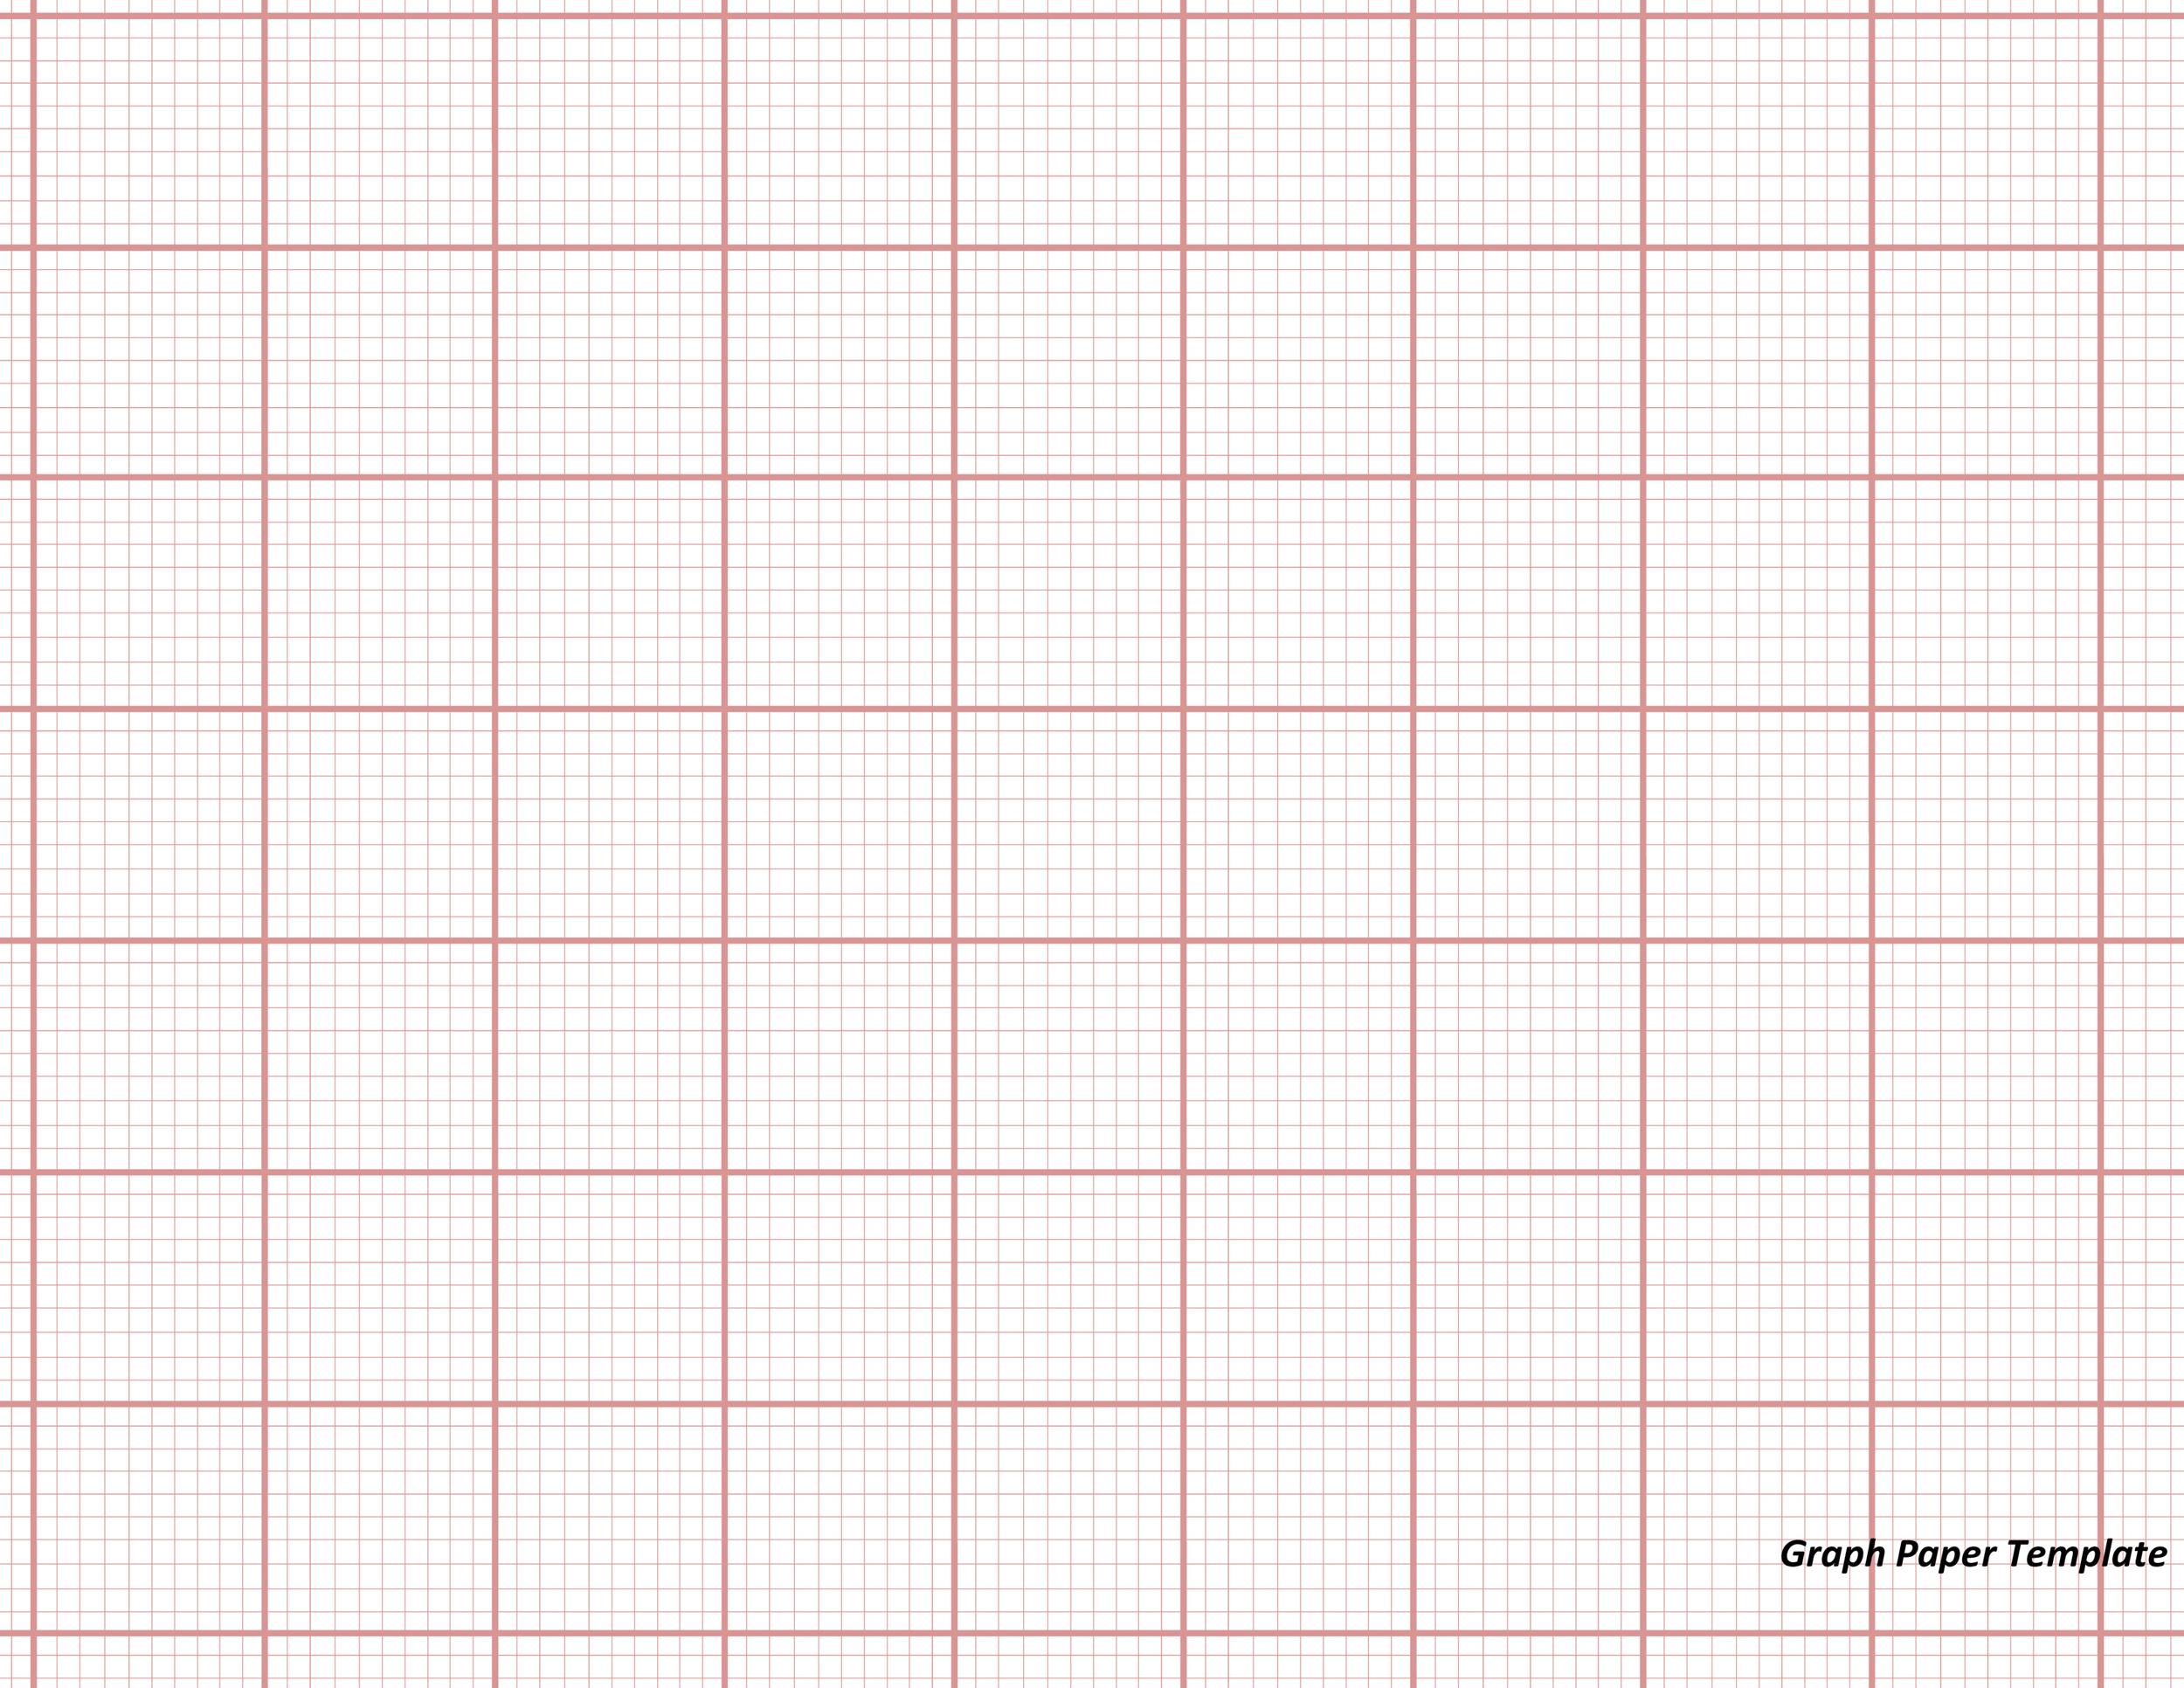 Free Graph Paper Template 12